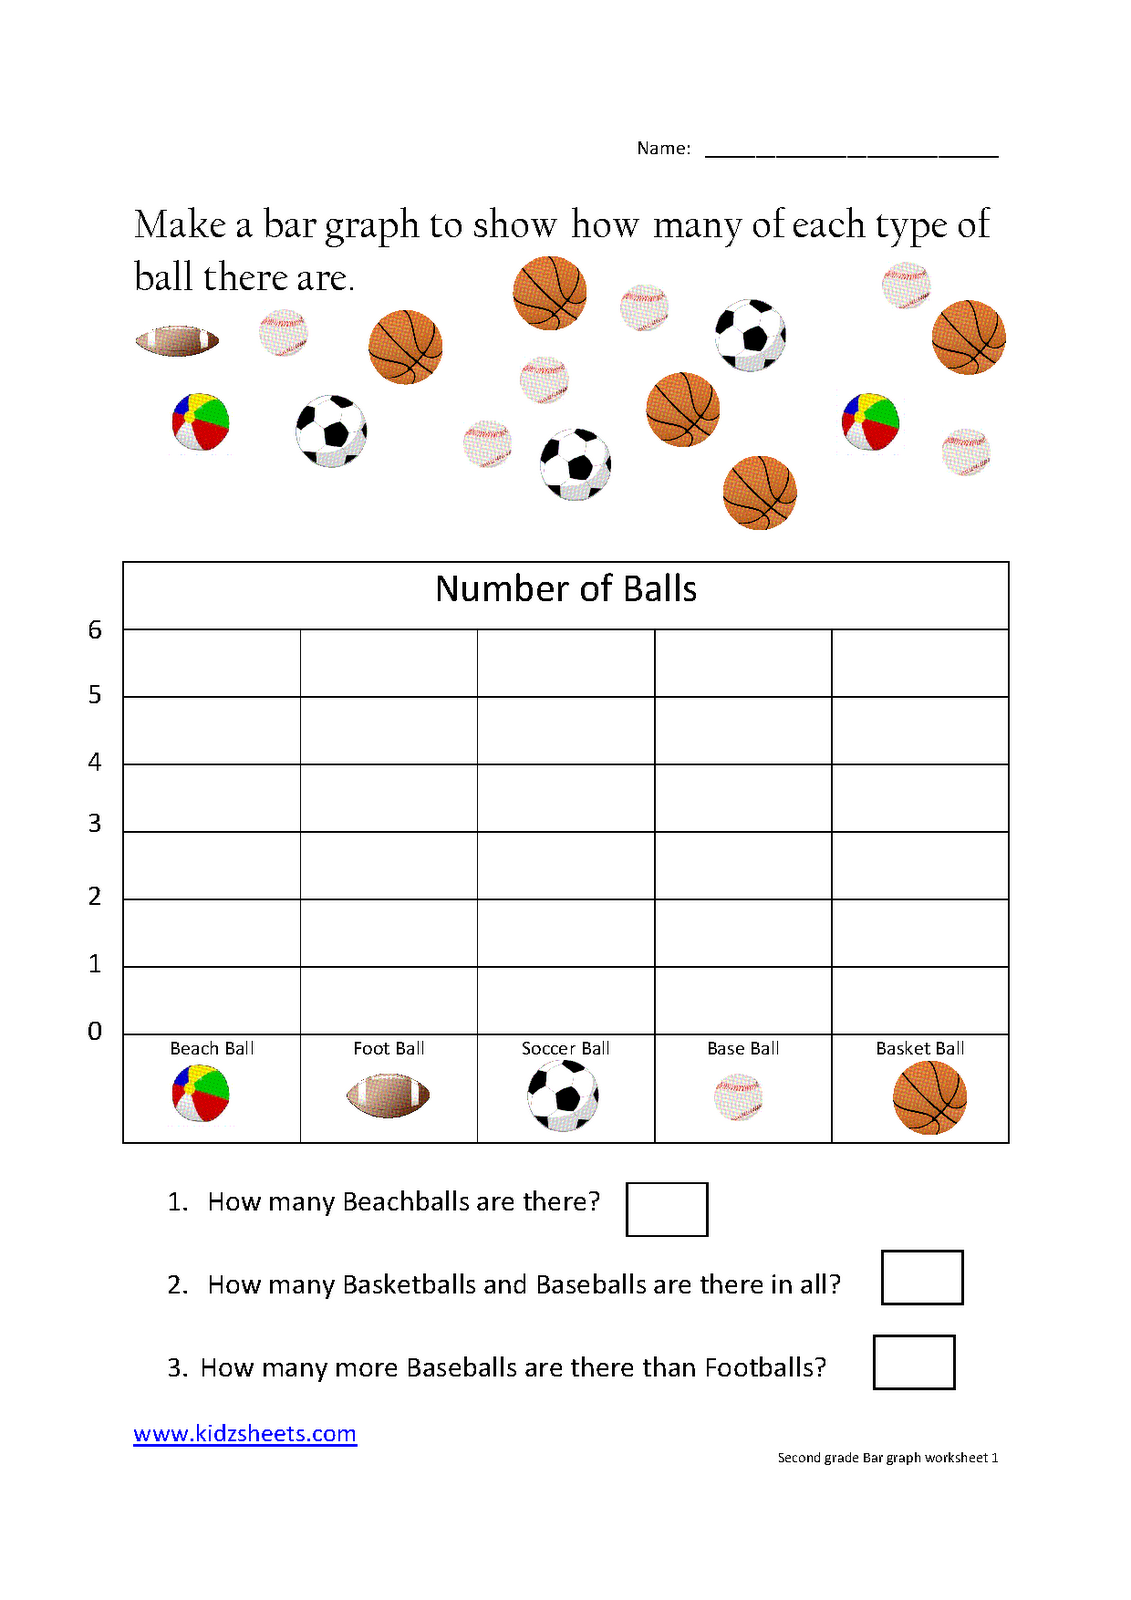 Worksheets Second Grade Worksheets Free kidz worksheets second grade bar graph worksheet1 graph